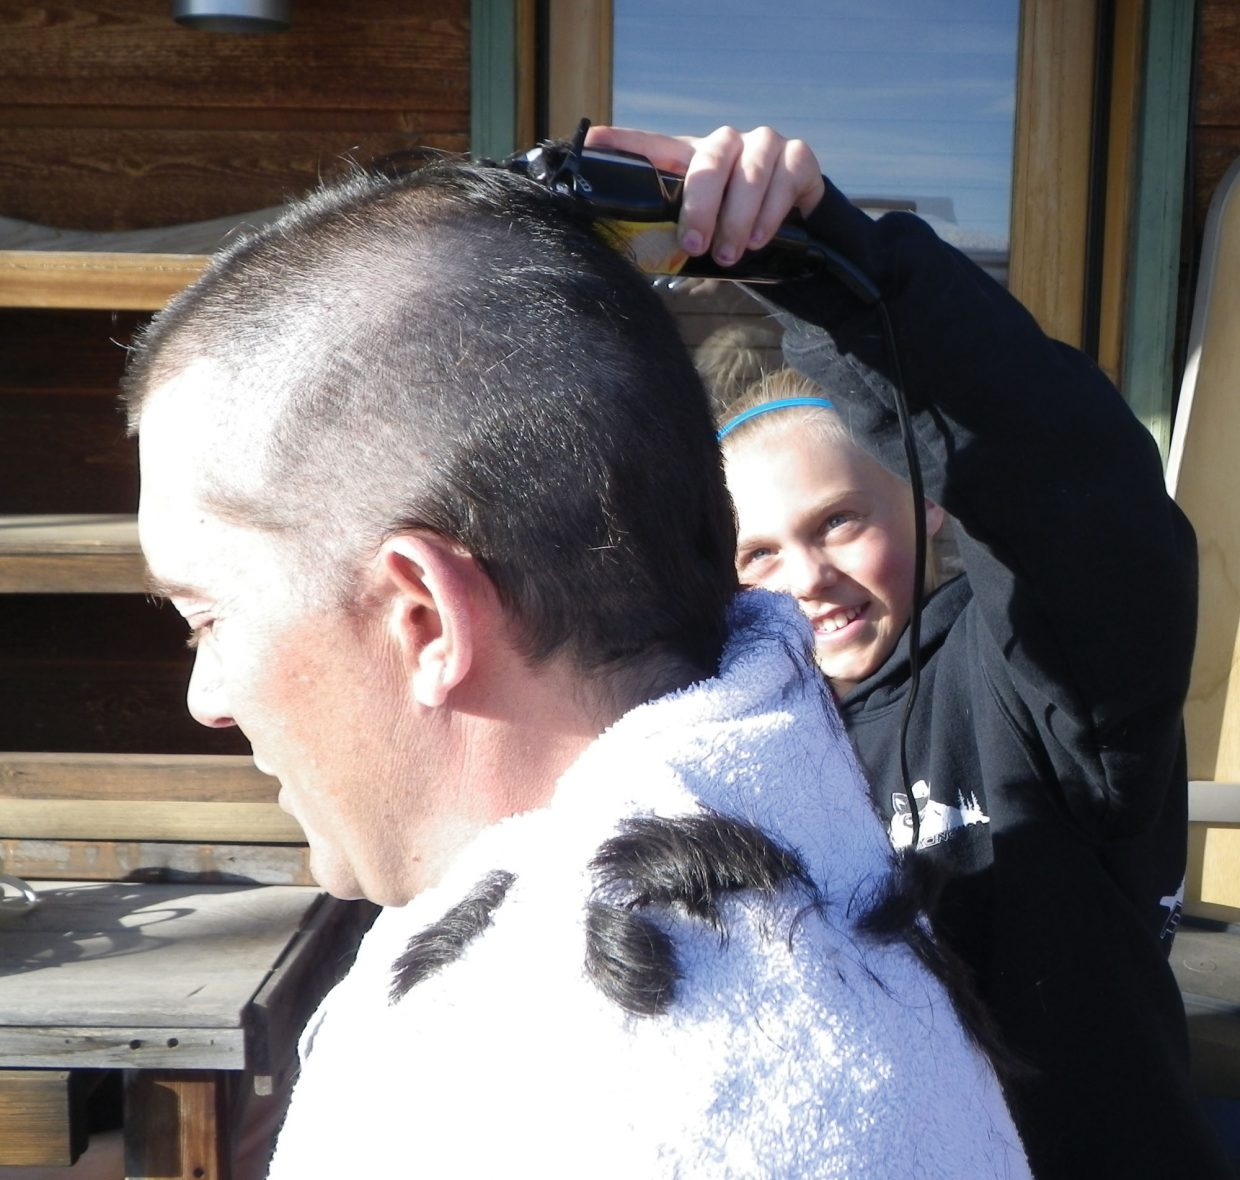 Ski coach Chris Puckett gets a new hairdo courtesy of Riley Smith. Puckett offered to let his athletes shave his head if they won a race at the J5 Rocky Mountain Division Finale on March 11 in Powderhorn. Riley won the slalom race and got her shot with the trimmers.